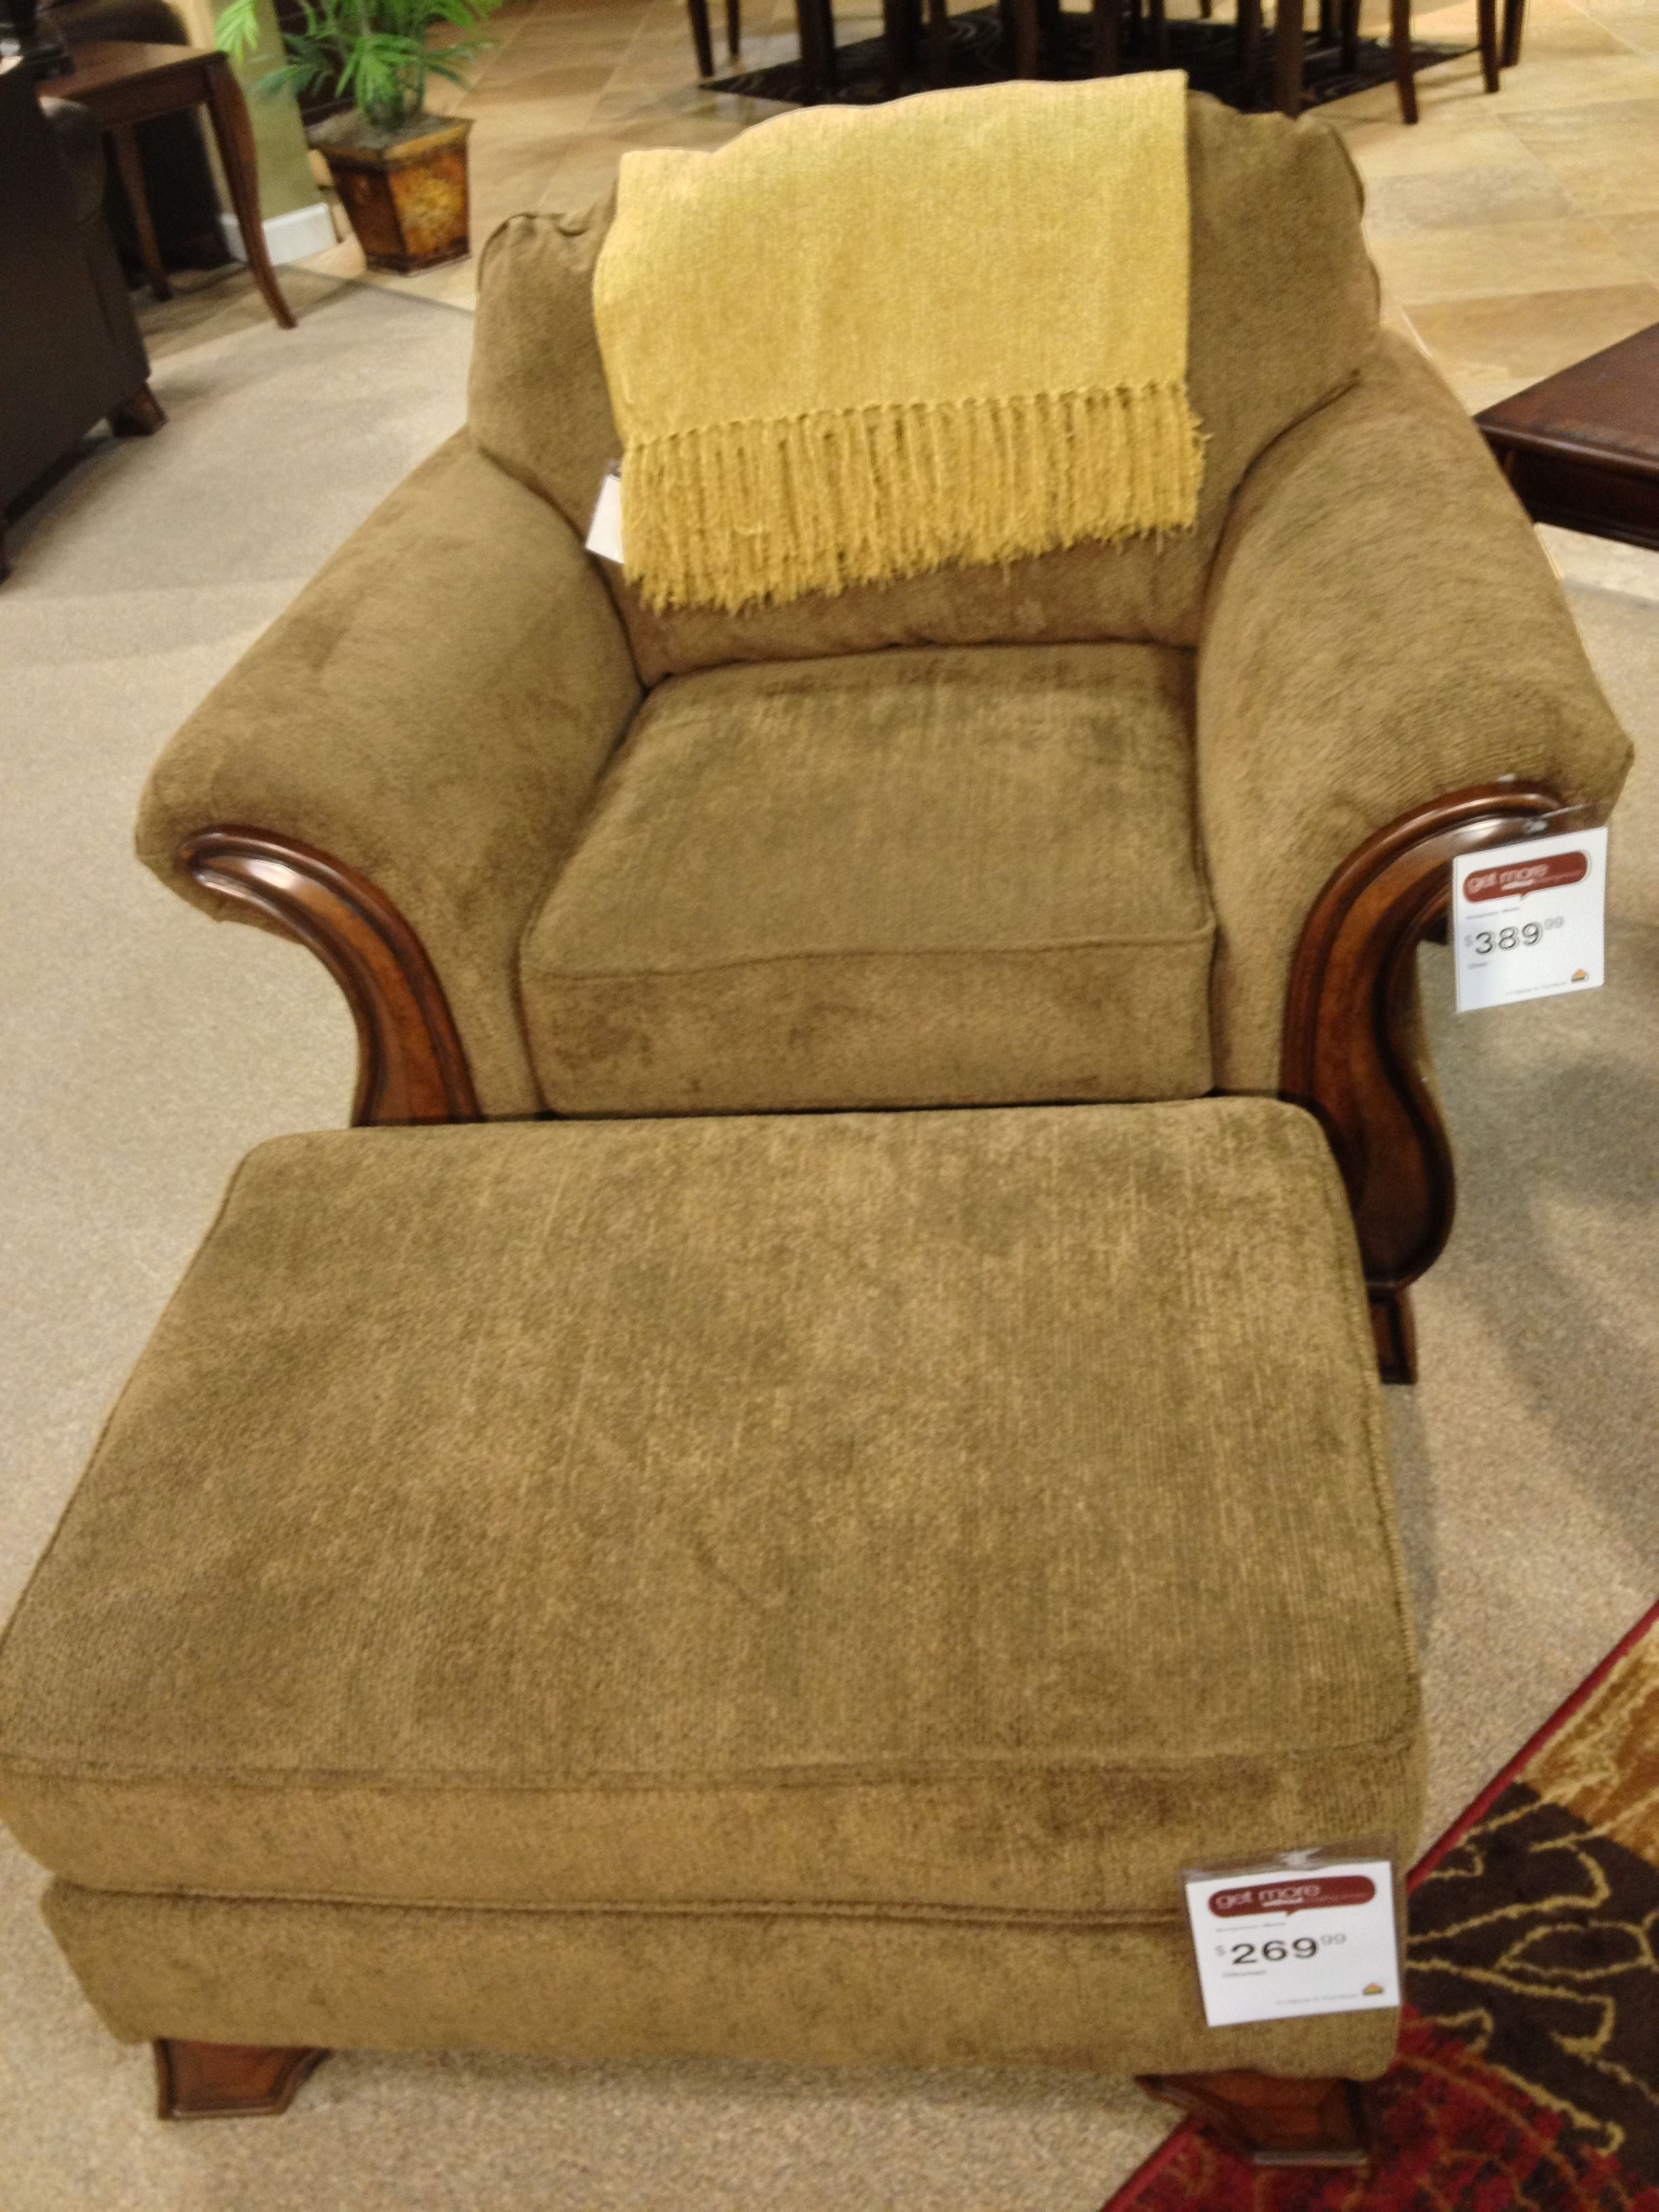 Montgomery Mocha #Chair And #Ottoman Ashley #Furniture In #TriCities